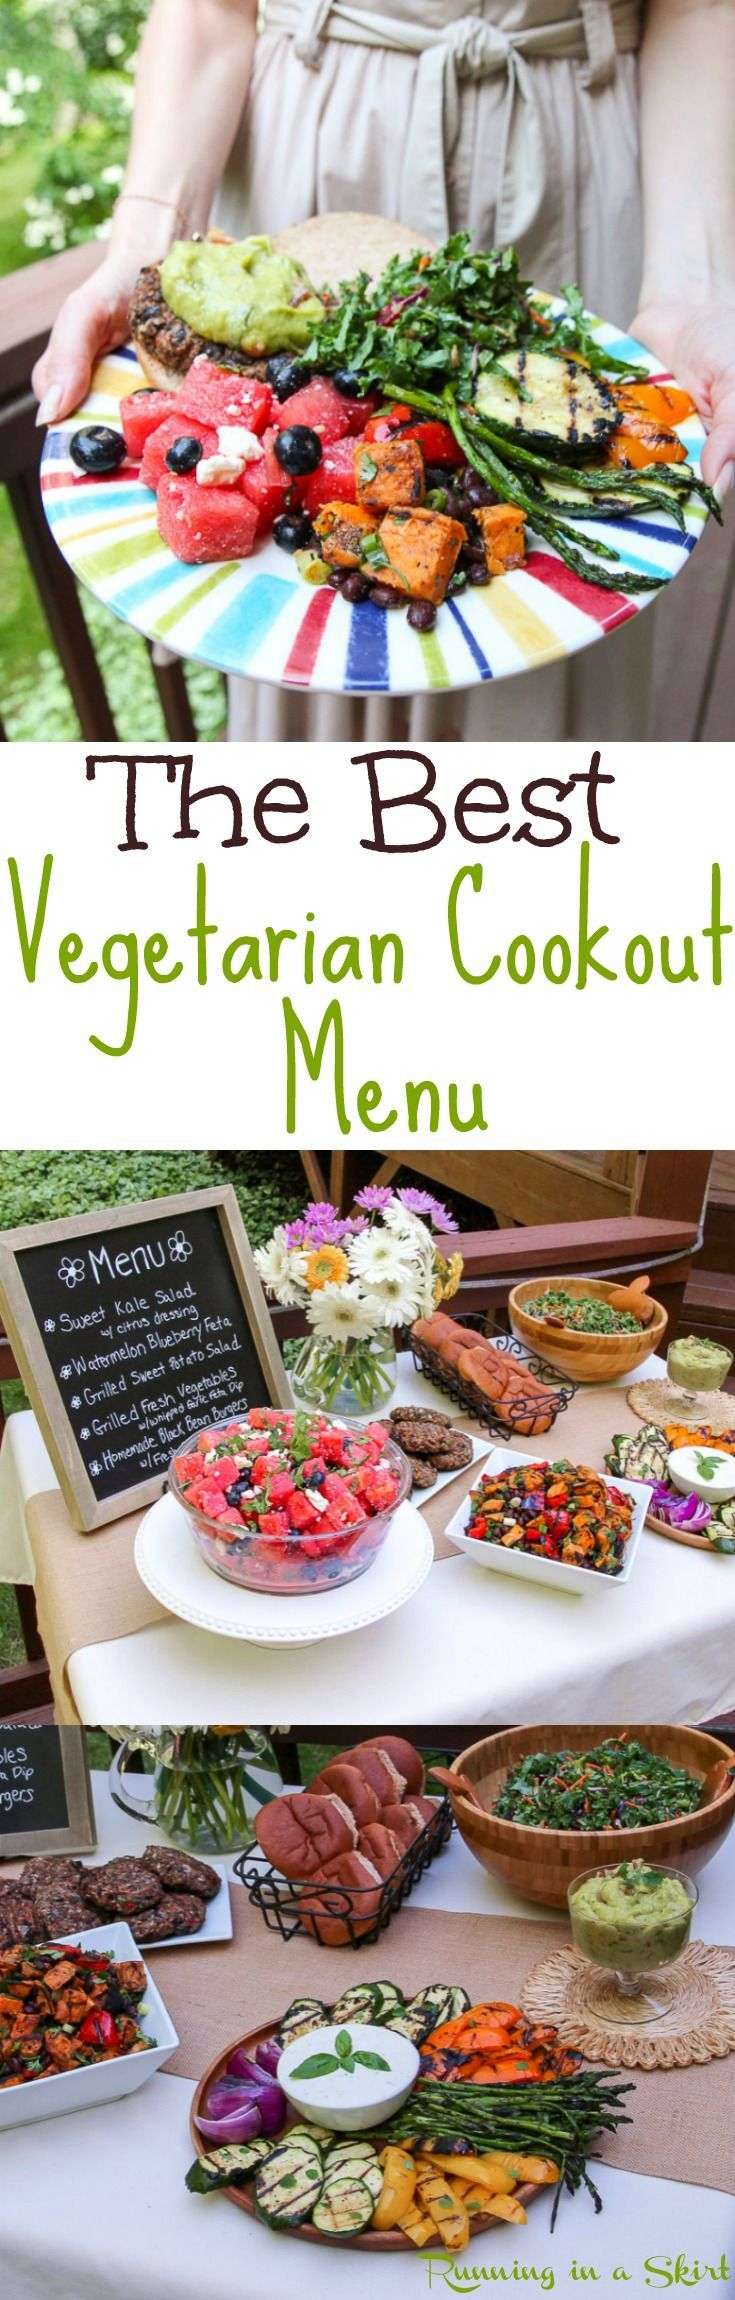 The Best Vegetarian Cookout Menu